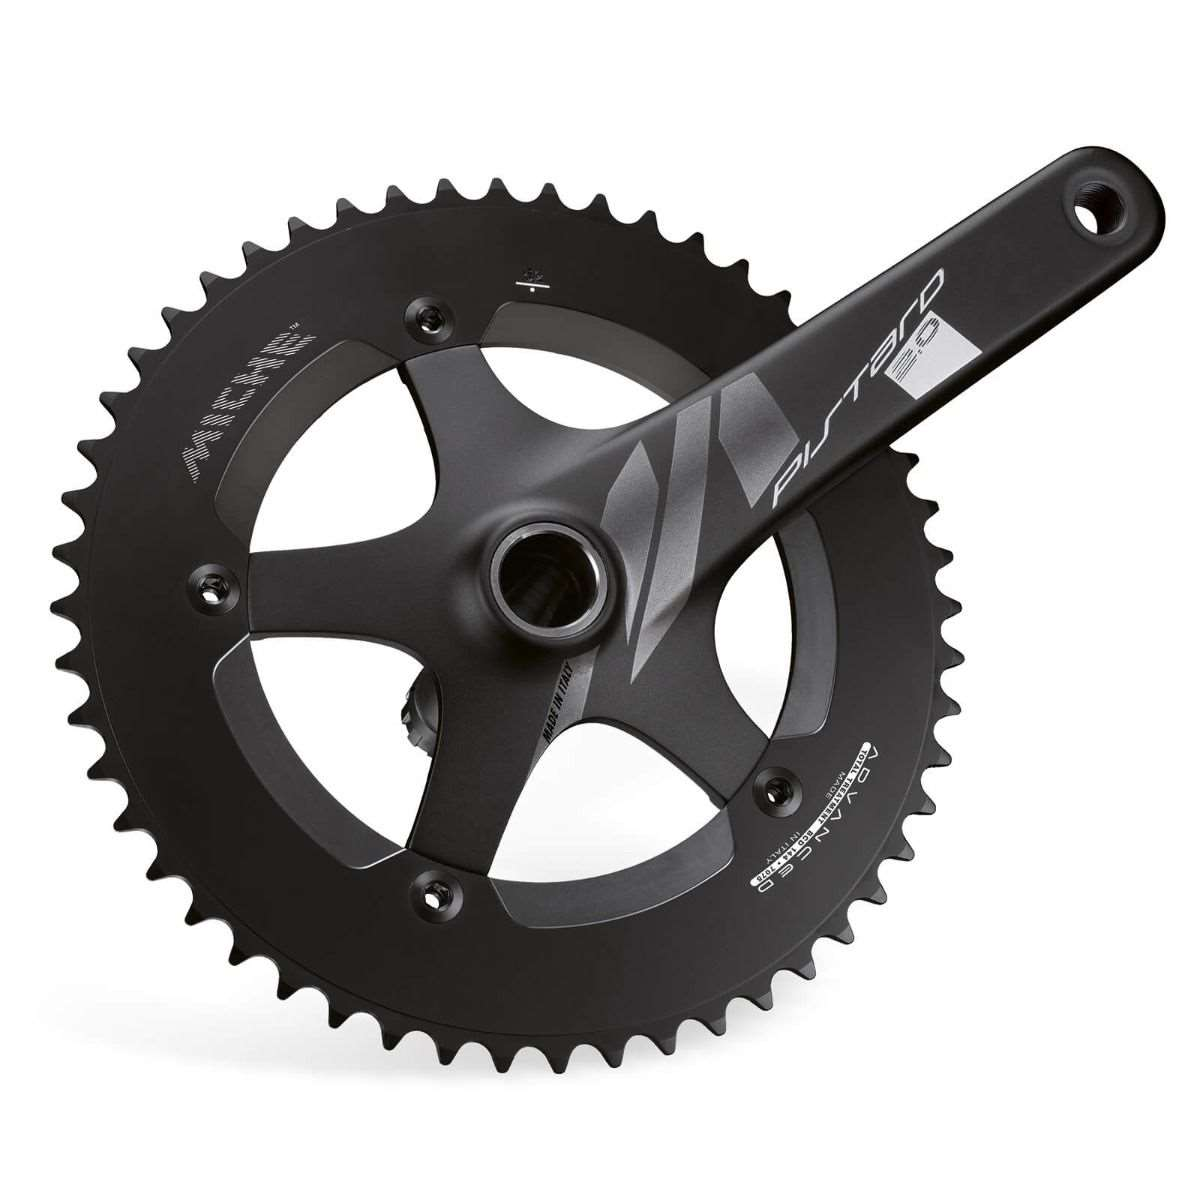 GUARNITURA PISTARD 2.0 165 46T BLACK